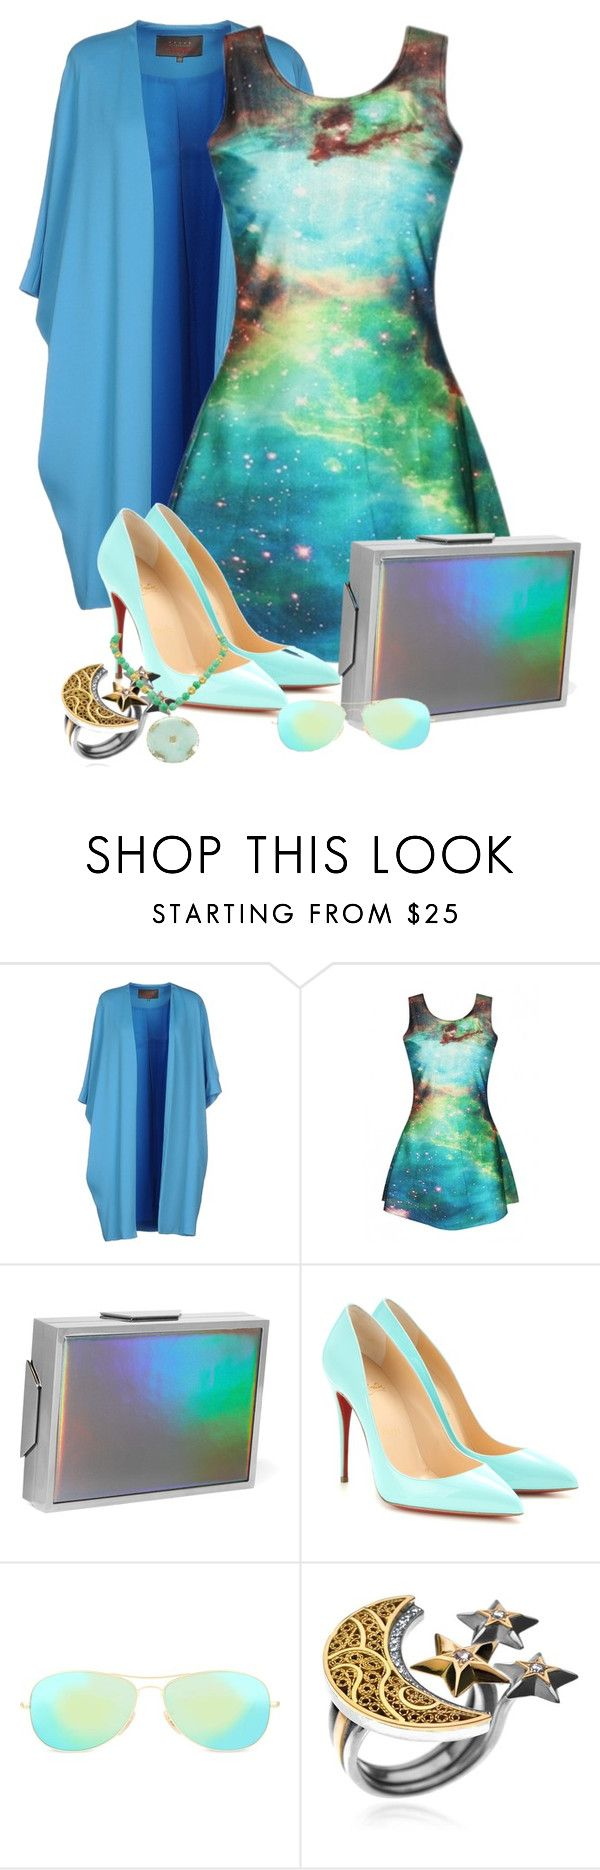 """""""Space Dress"""" by fantasiegirl ❤ liked on Polyvore featuring Space Style Concept, Lee Savage, Christian Louboutin, Ray-Ban and AZZA FAHMY"""